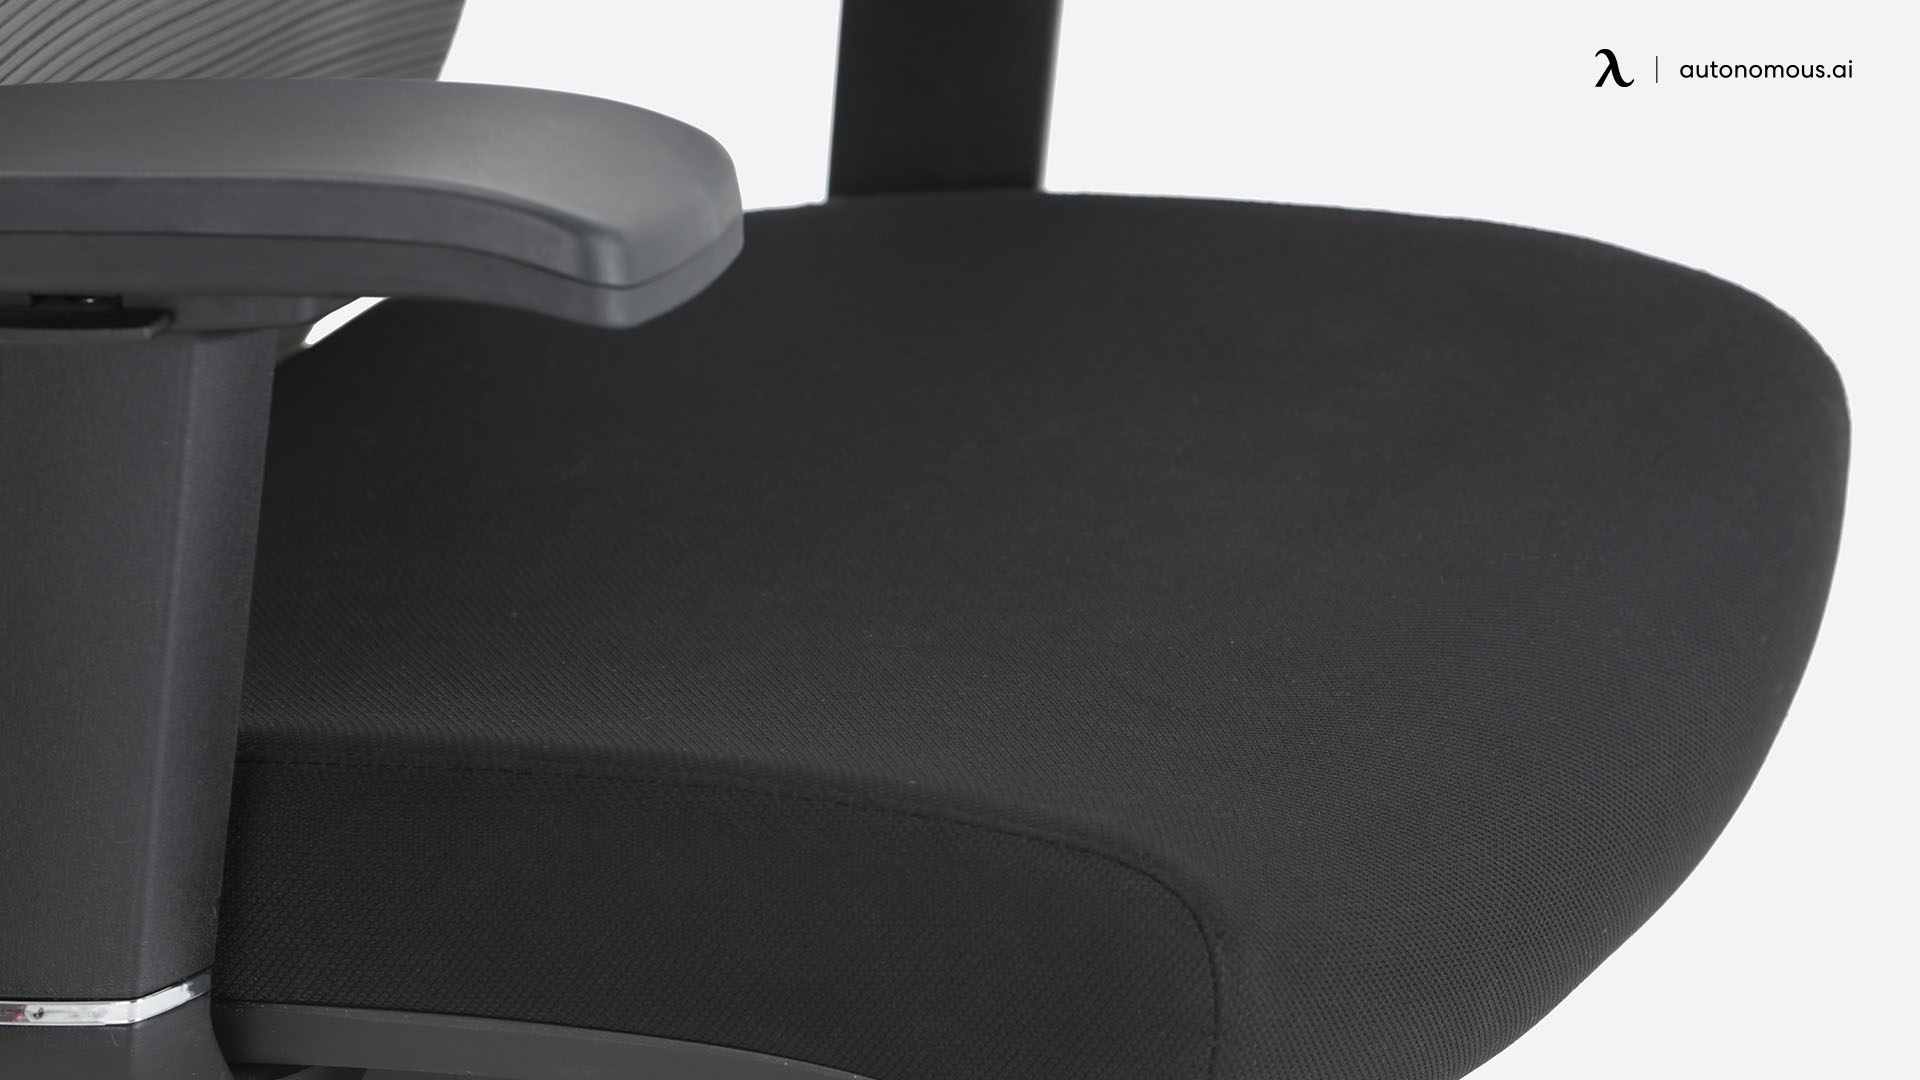 Seat width and depth